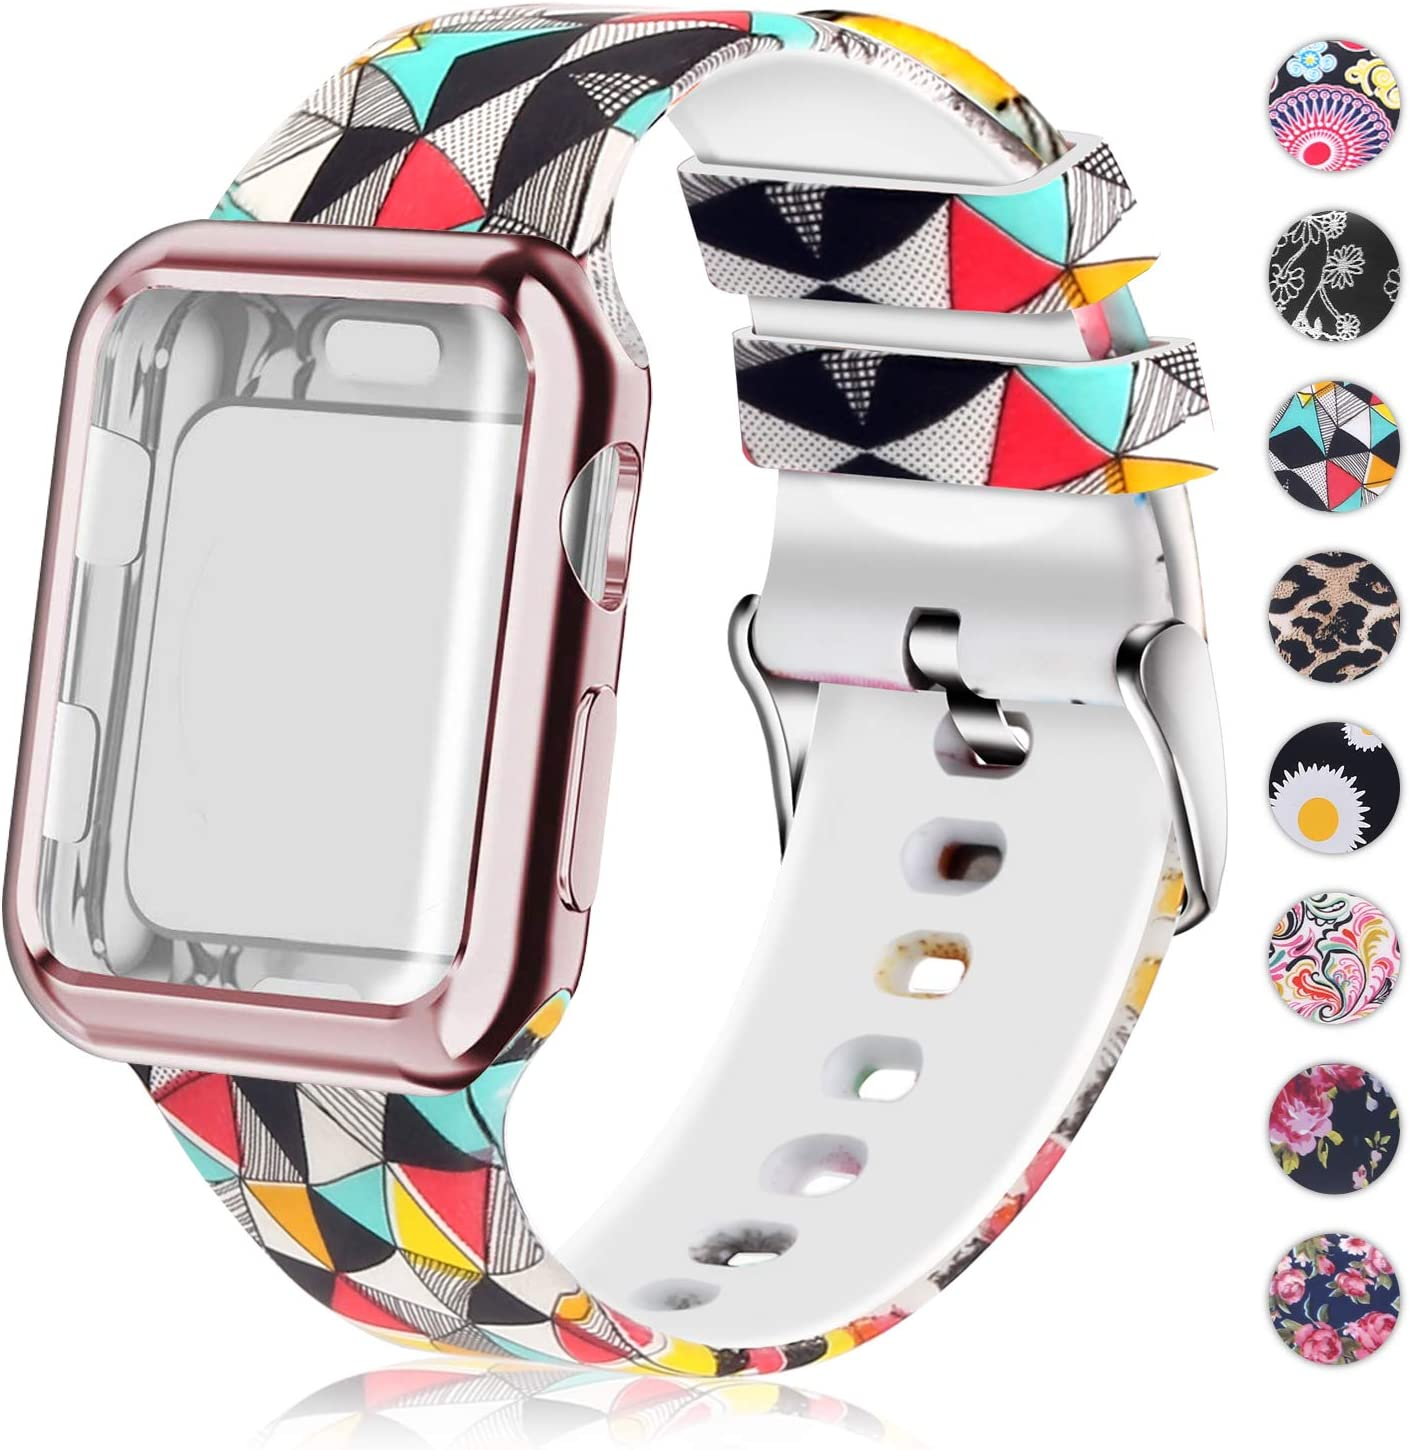 Compatible for Apple Watch Band 38mm with Screen Protector Case, Soft Silicone Sport Wristband for Apple Watch iwatch Series 3 2 1 (38mm,Stereoscopic image)